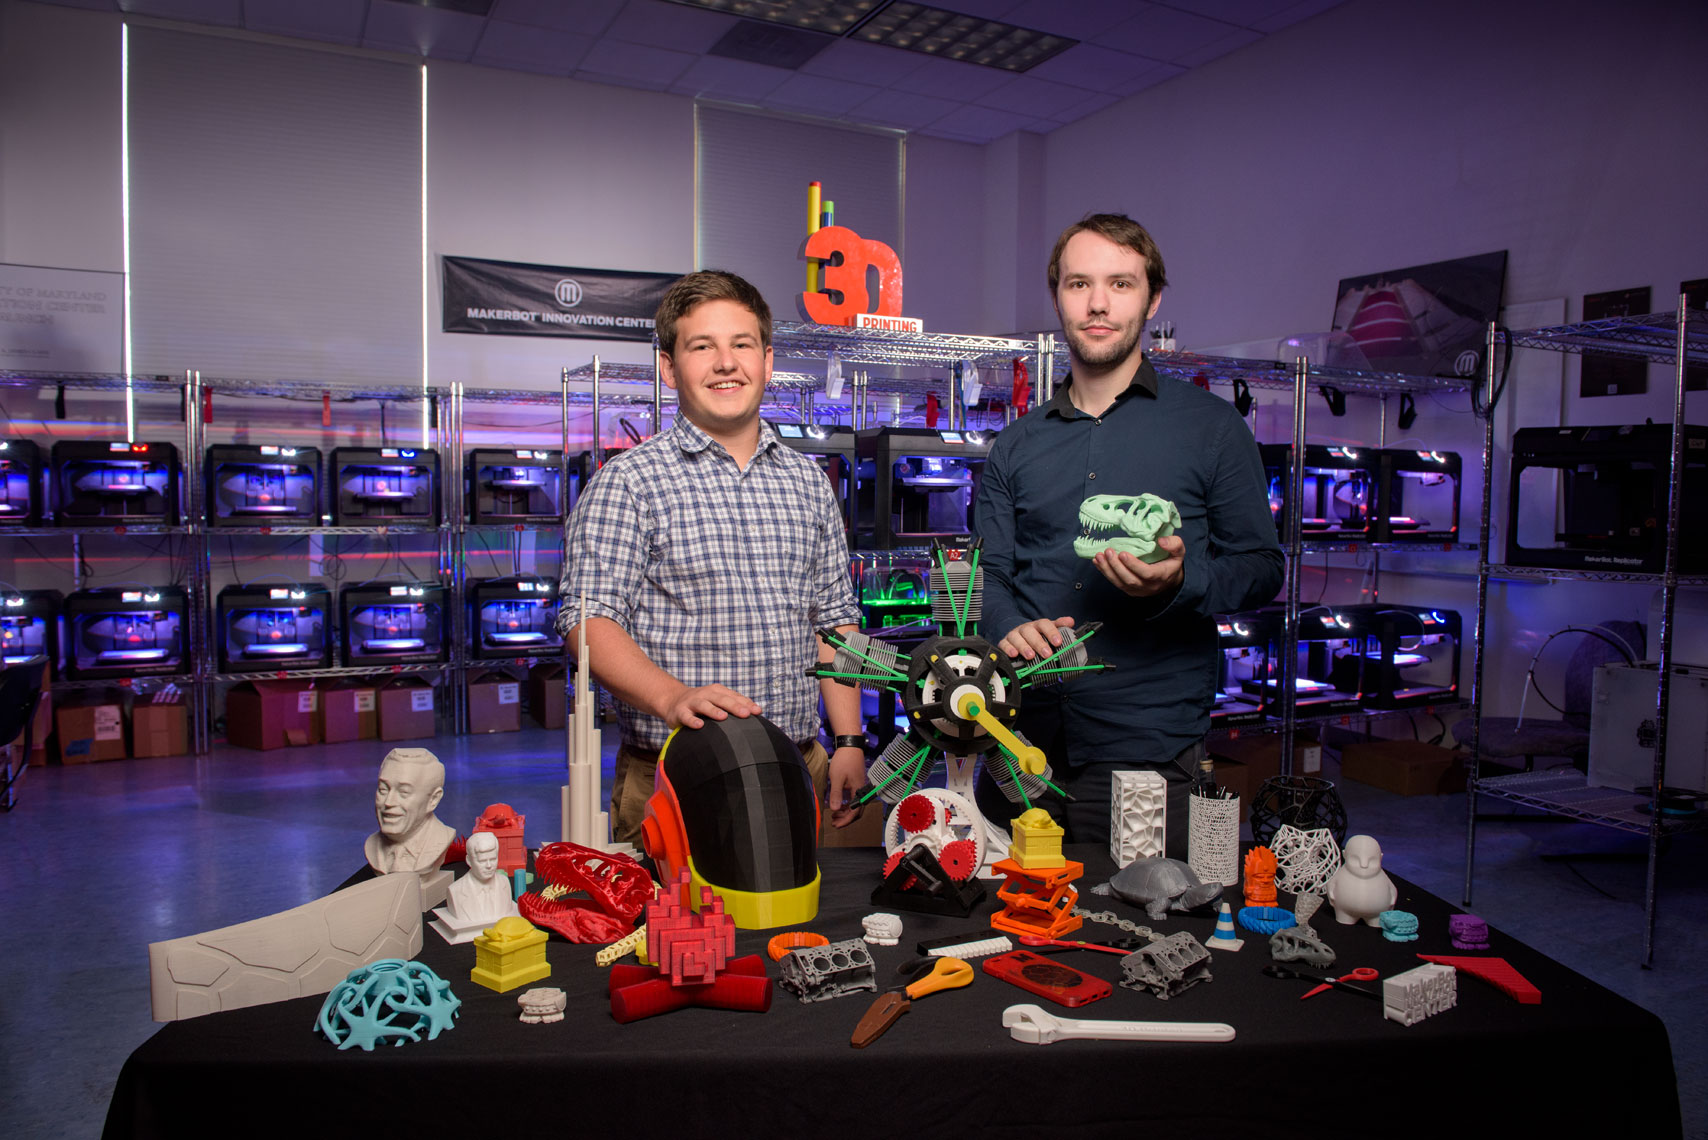 Engineering students standing with 3D printed items